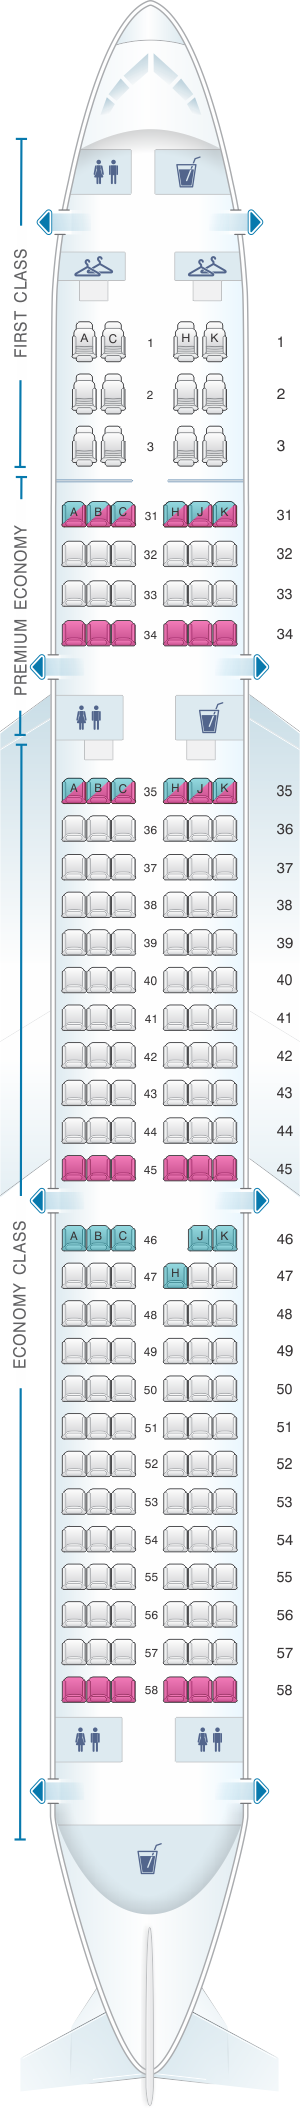 Seat map for China Southern Airlines Airbus A321